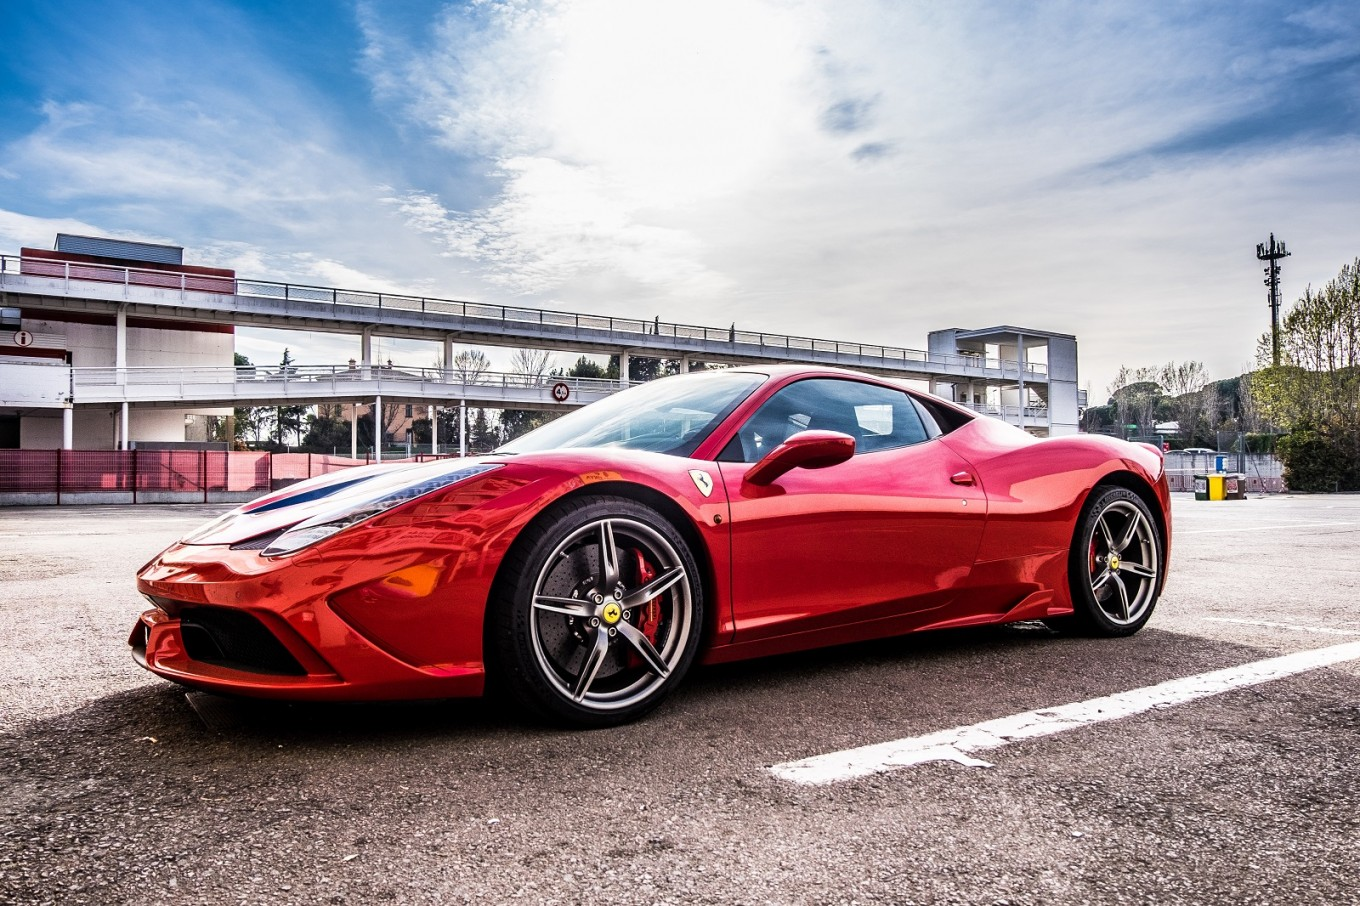 ferrari supercars are so hot that they u0026 39 re sold out into 2019 - lifestyle